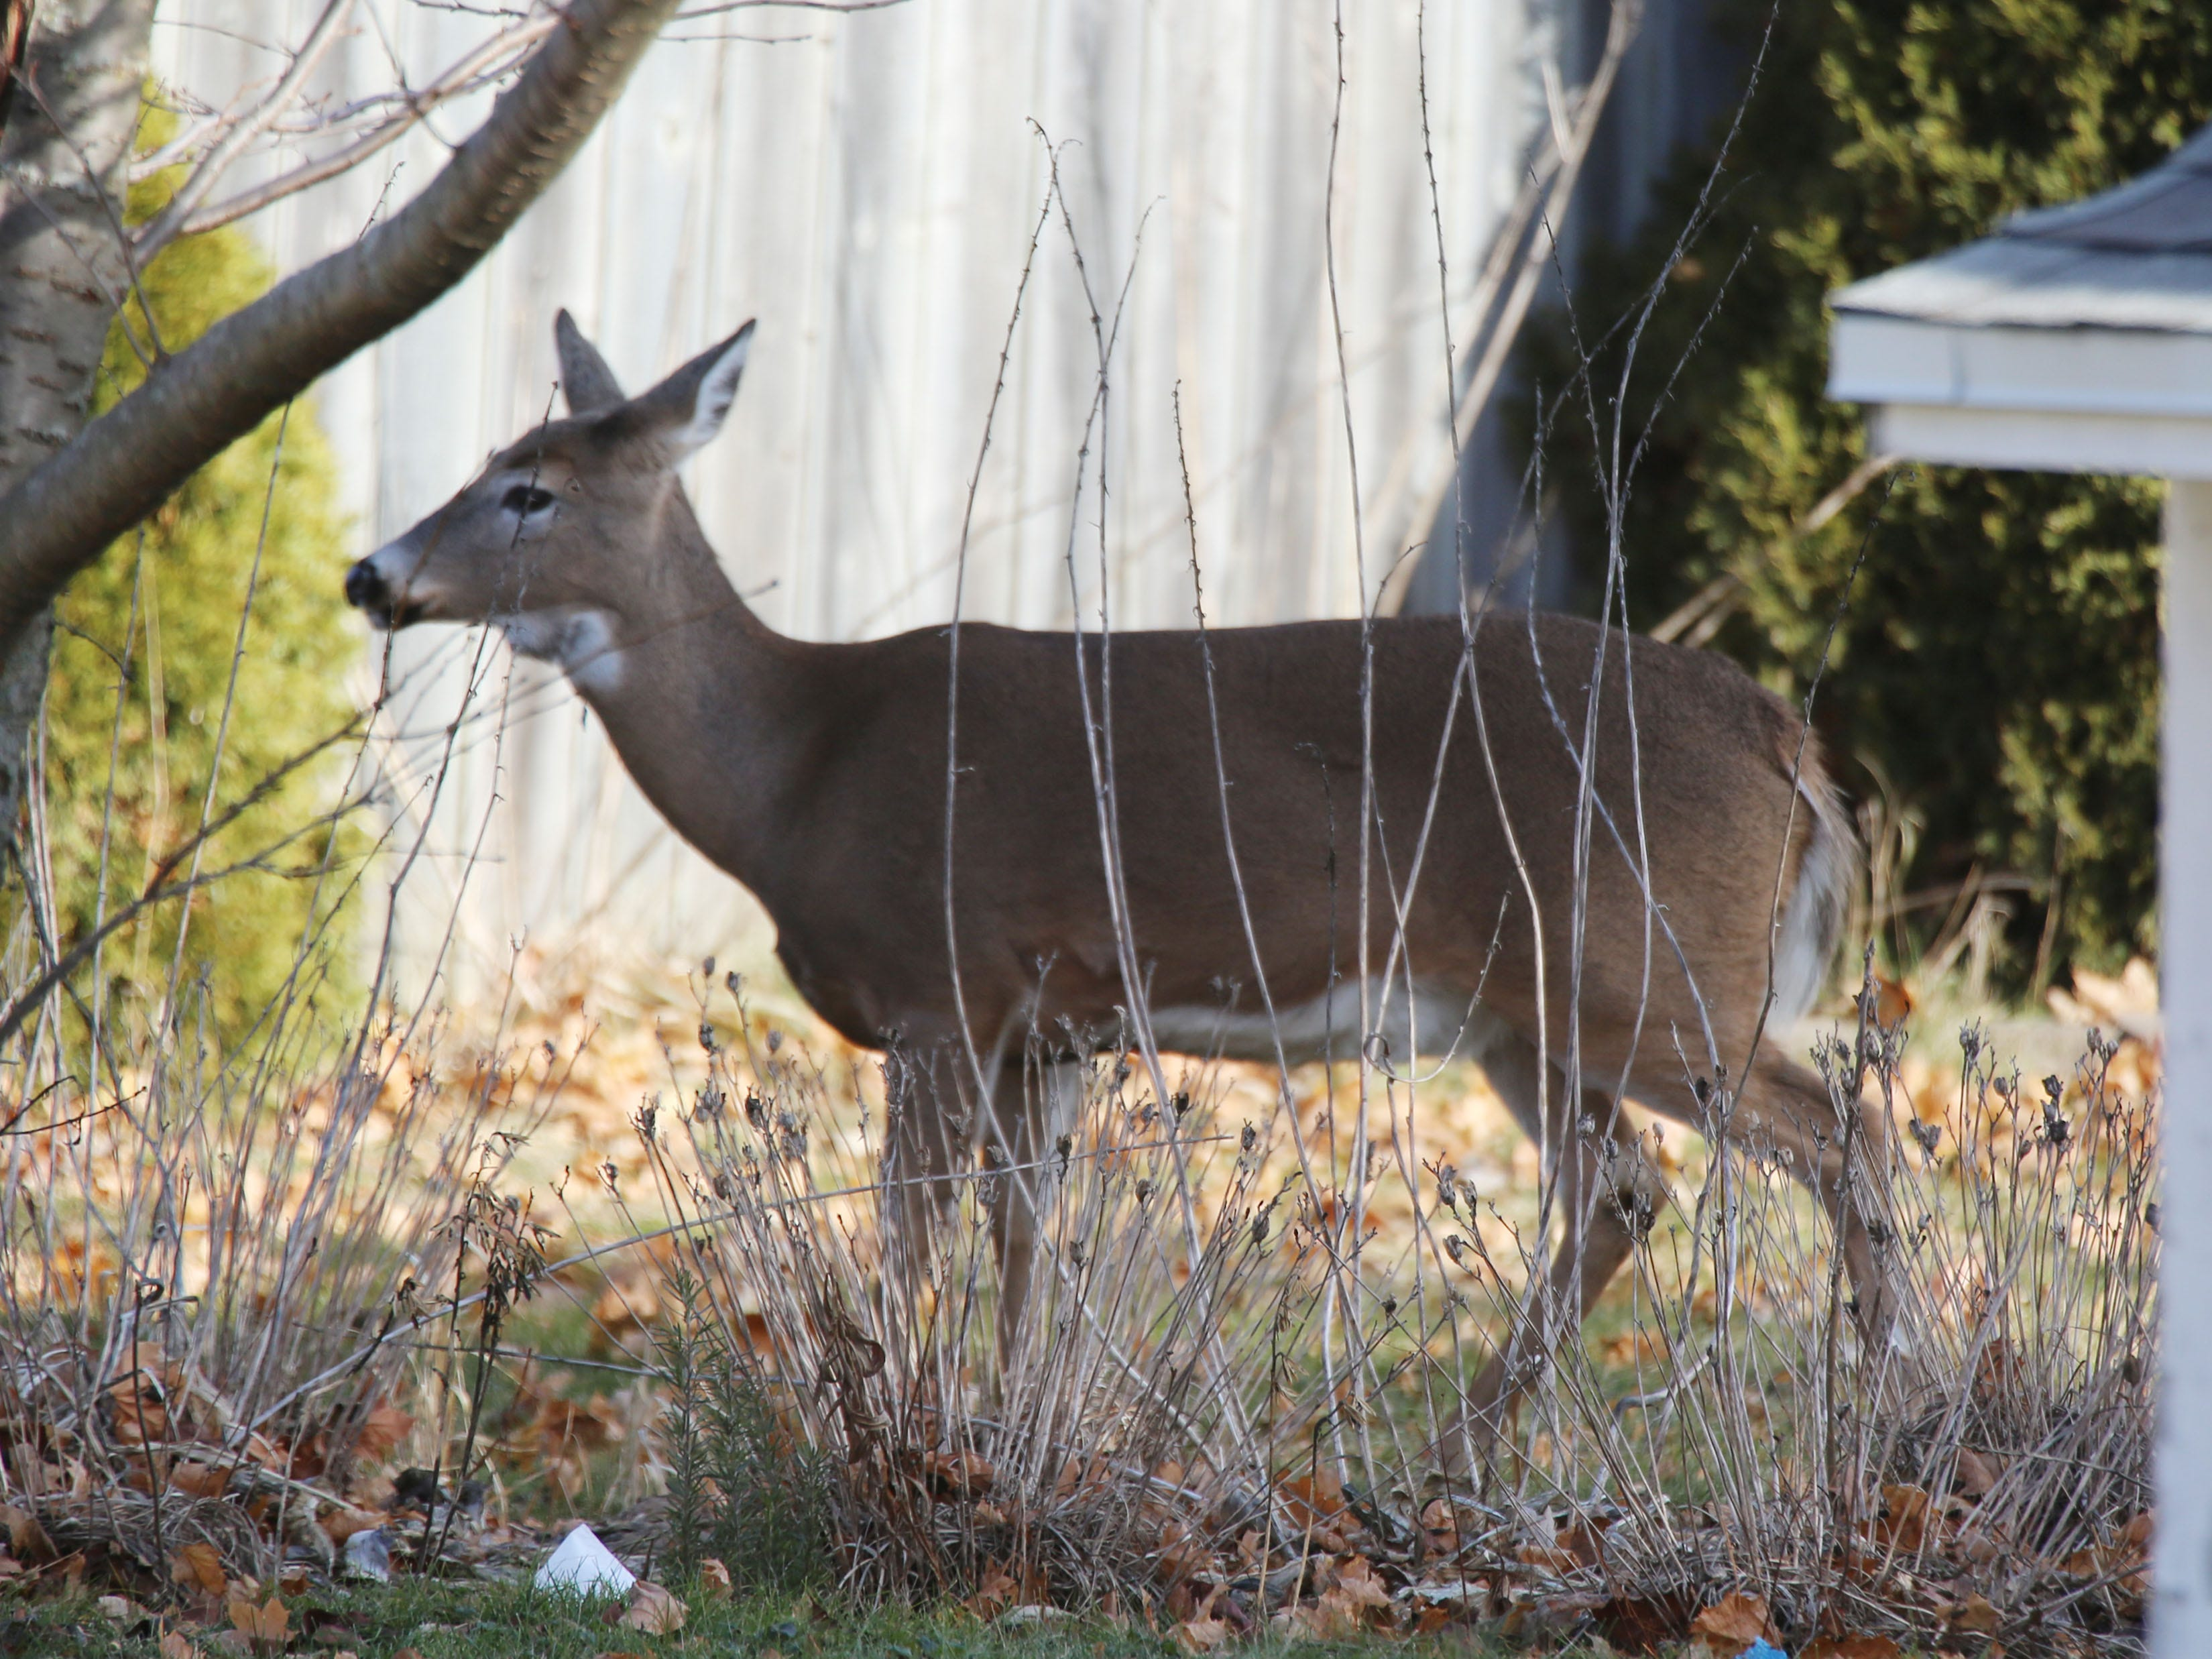 A deer pokes around in a backyard in the 1000 block of North 23rd Street in Sheboygan, Tuesday, November 27, 2018 in Sheboygan, Wis.